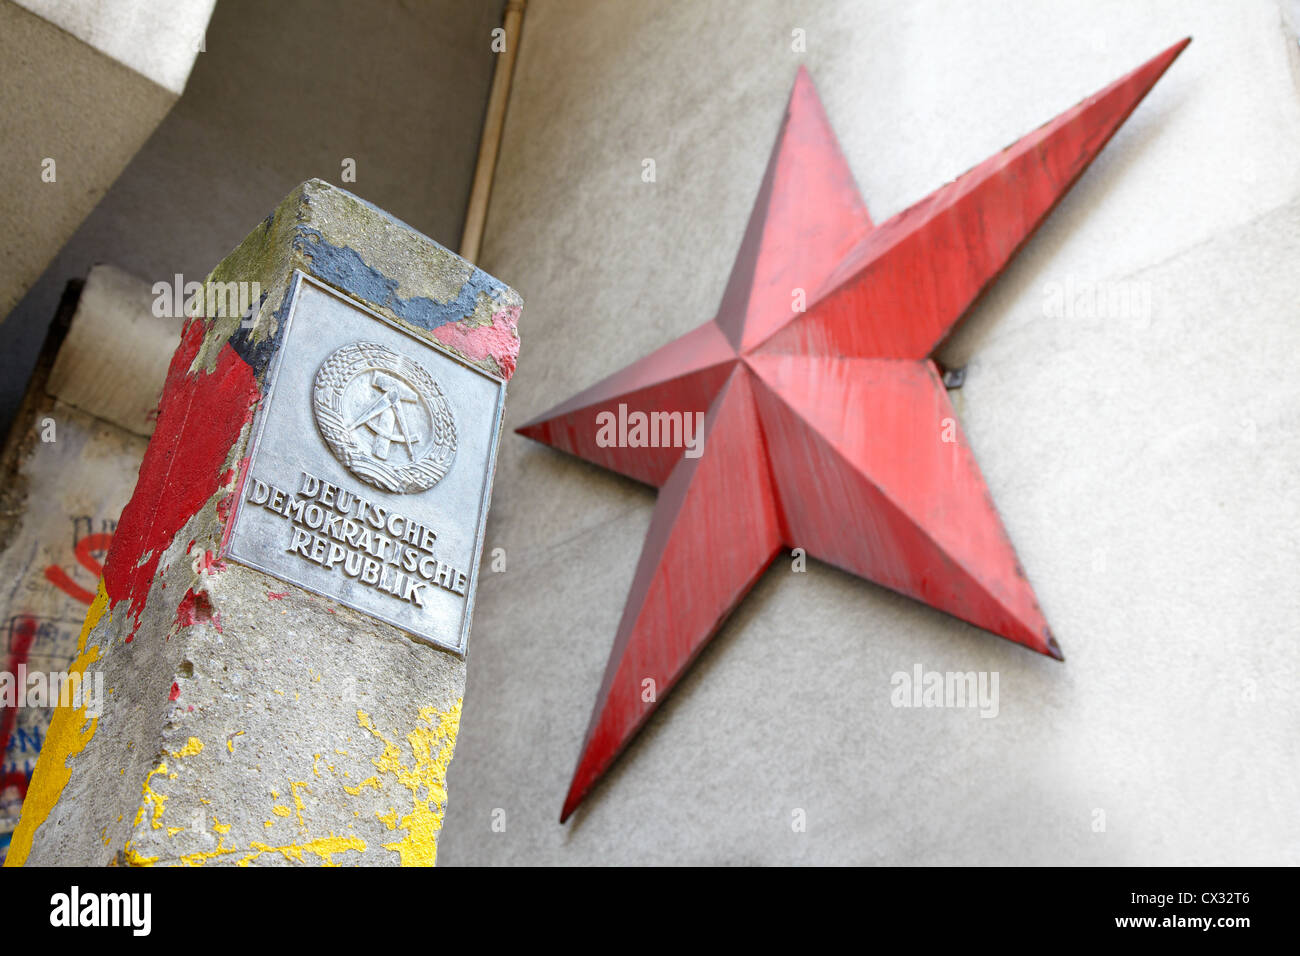 DDR sign and red star in Berlin Stock Photo